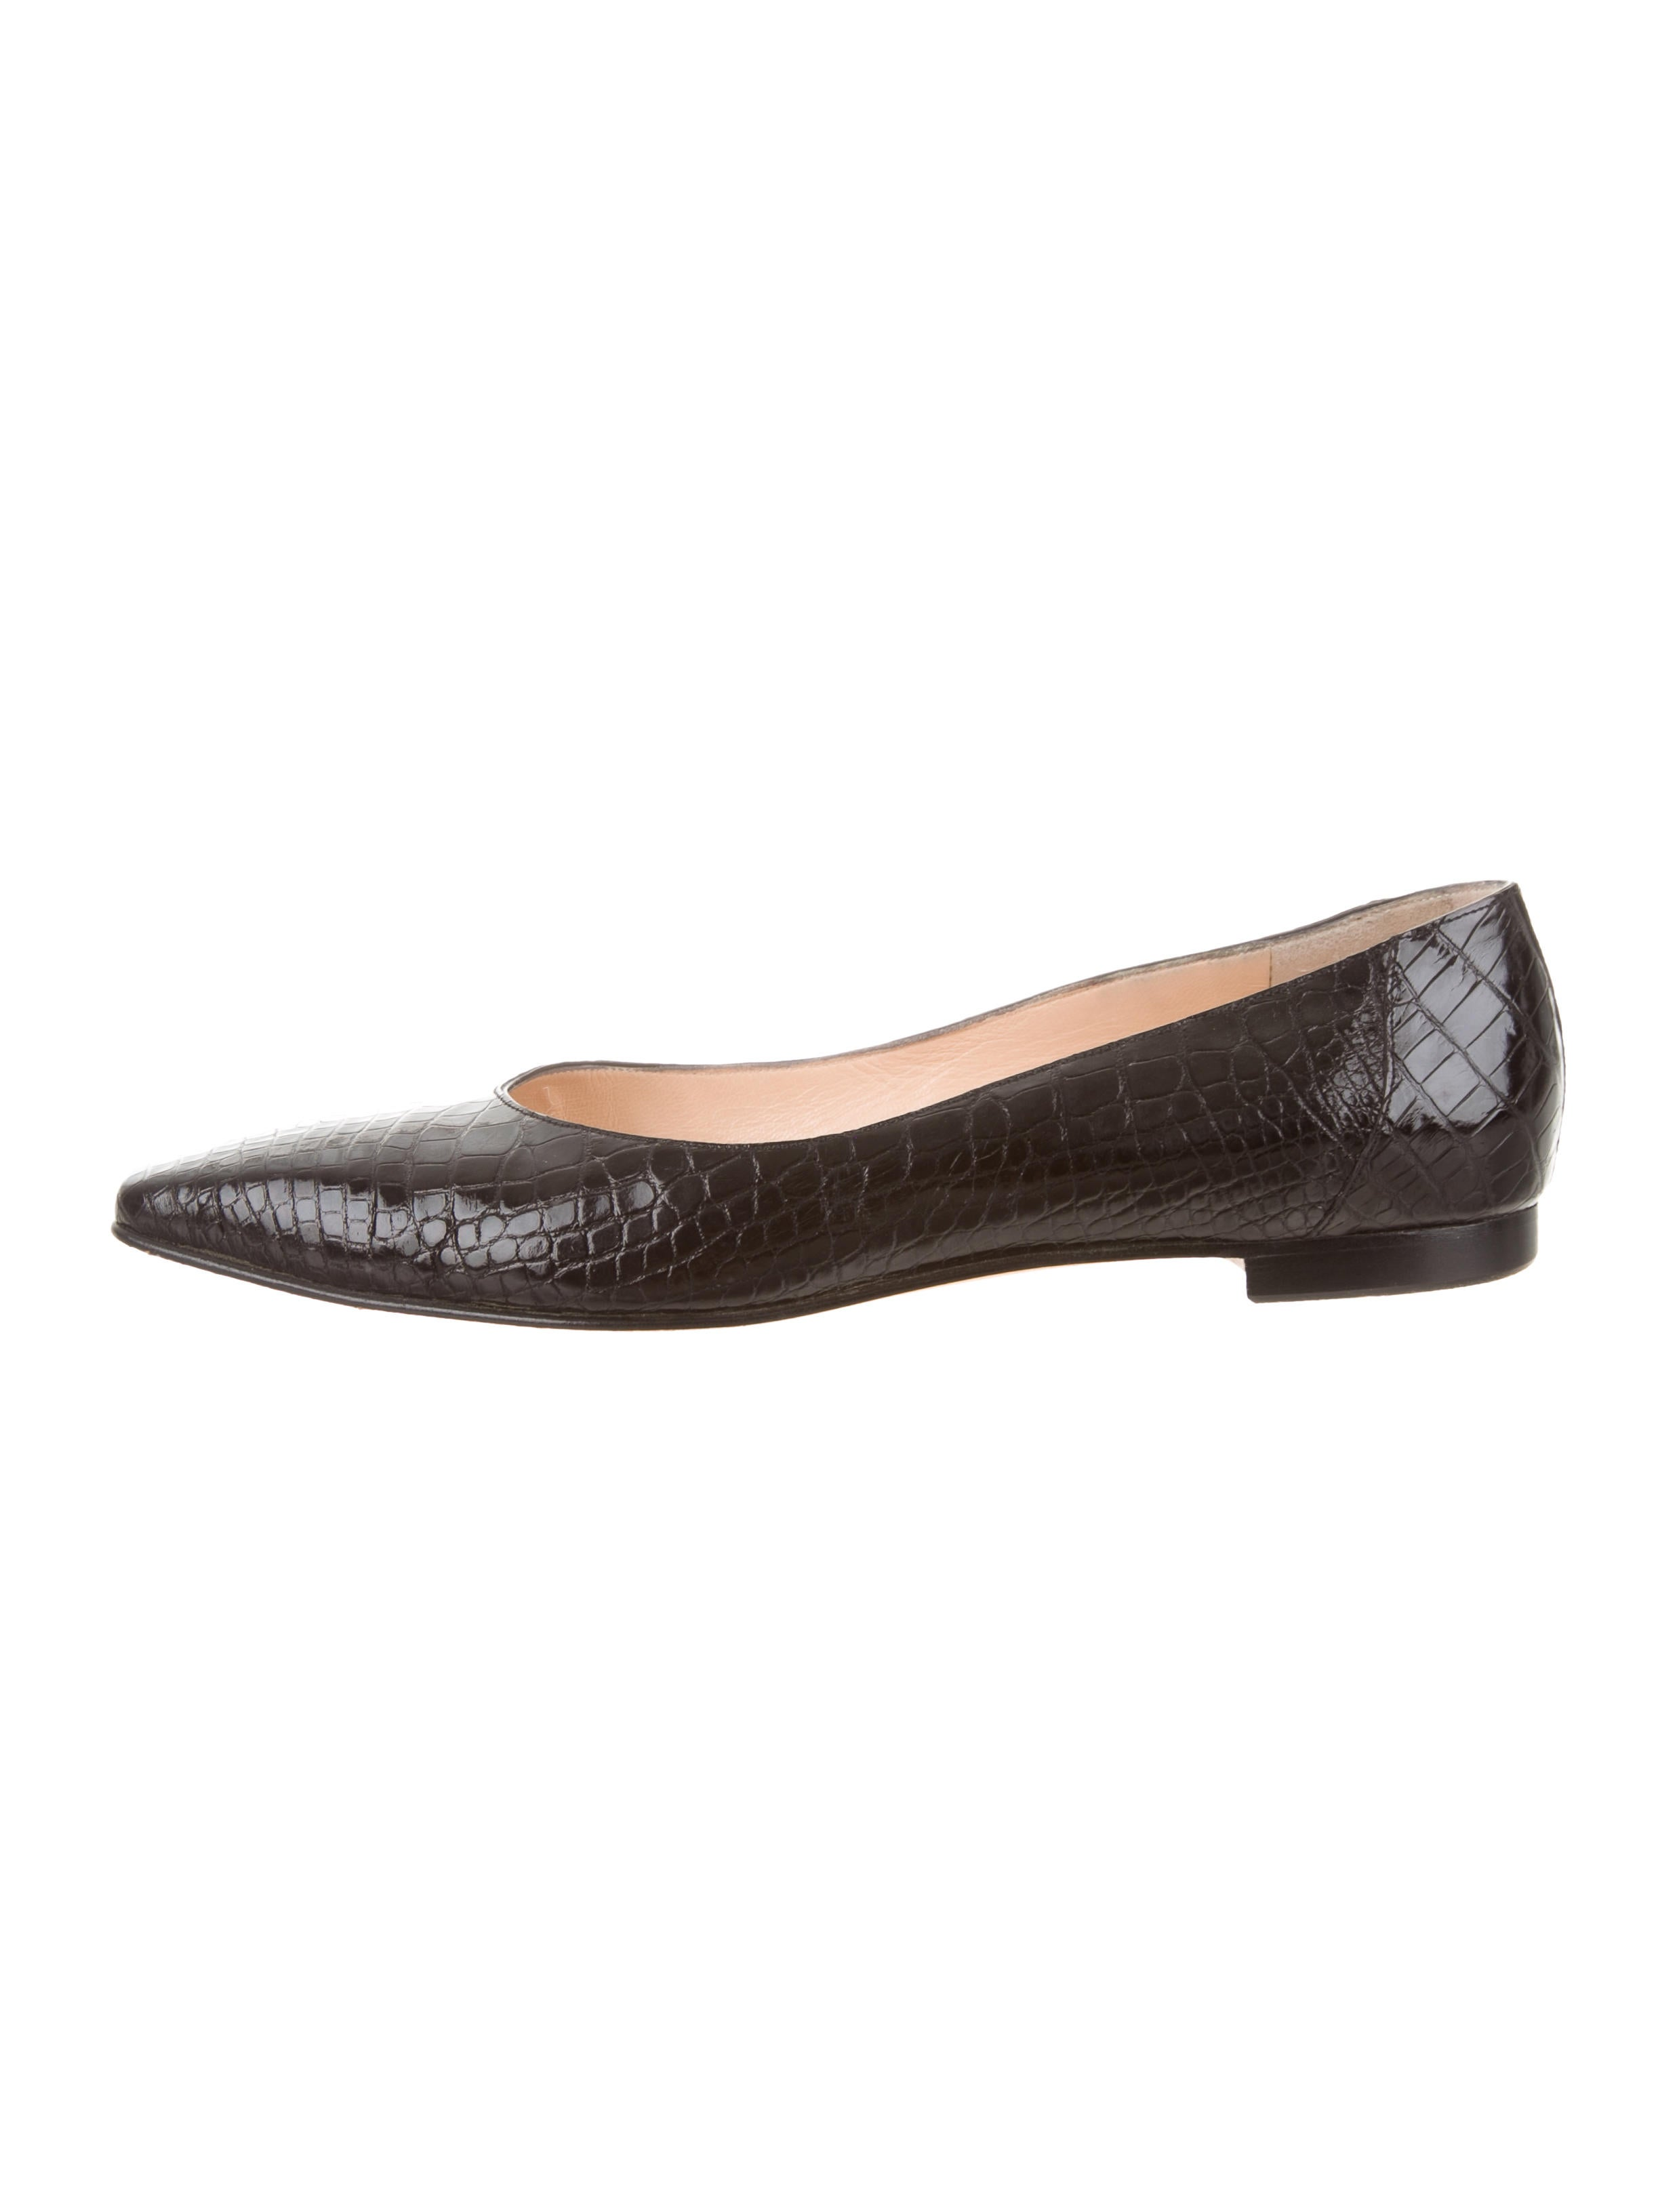 sale tumblr Manolo Blahnik Alligator Square-Toe Loafers browse cheap price fashionable sale online sale lowest price sY6kQ